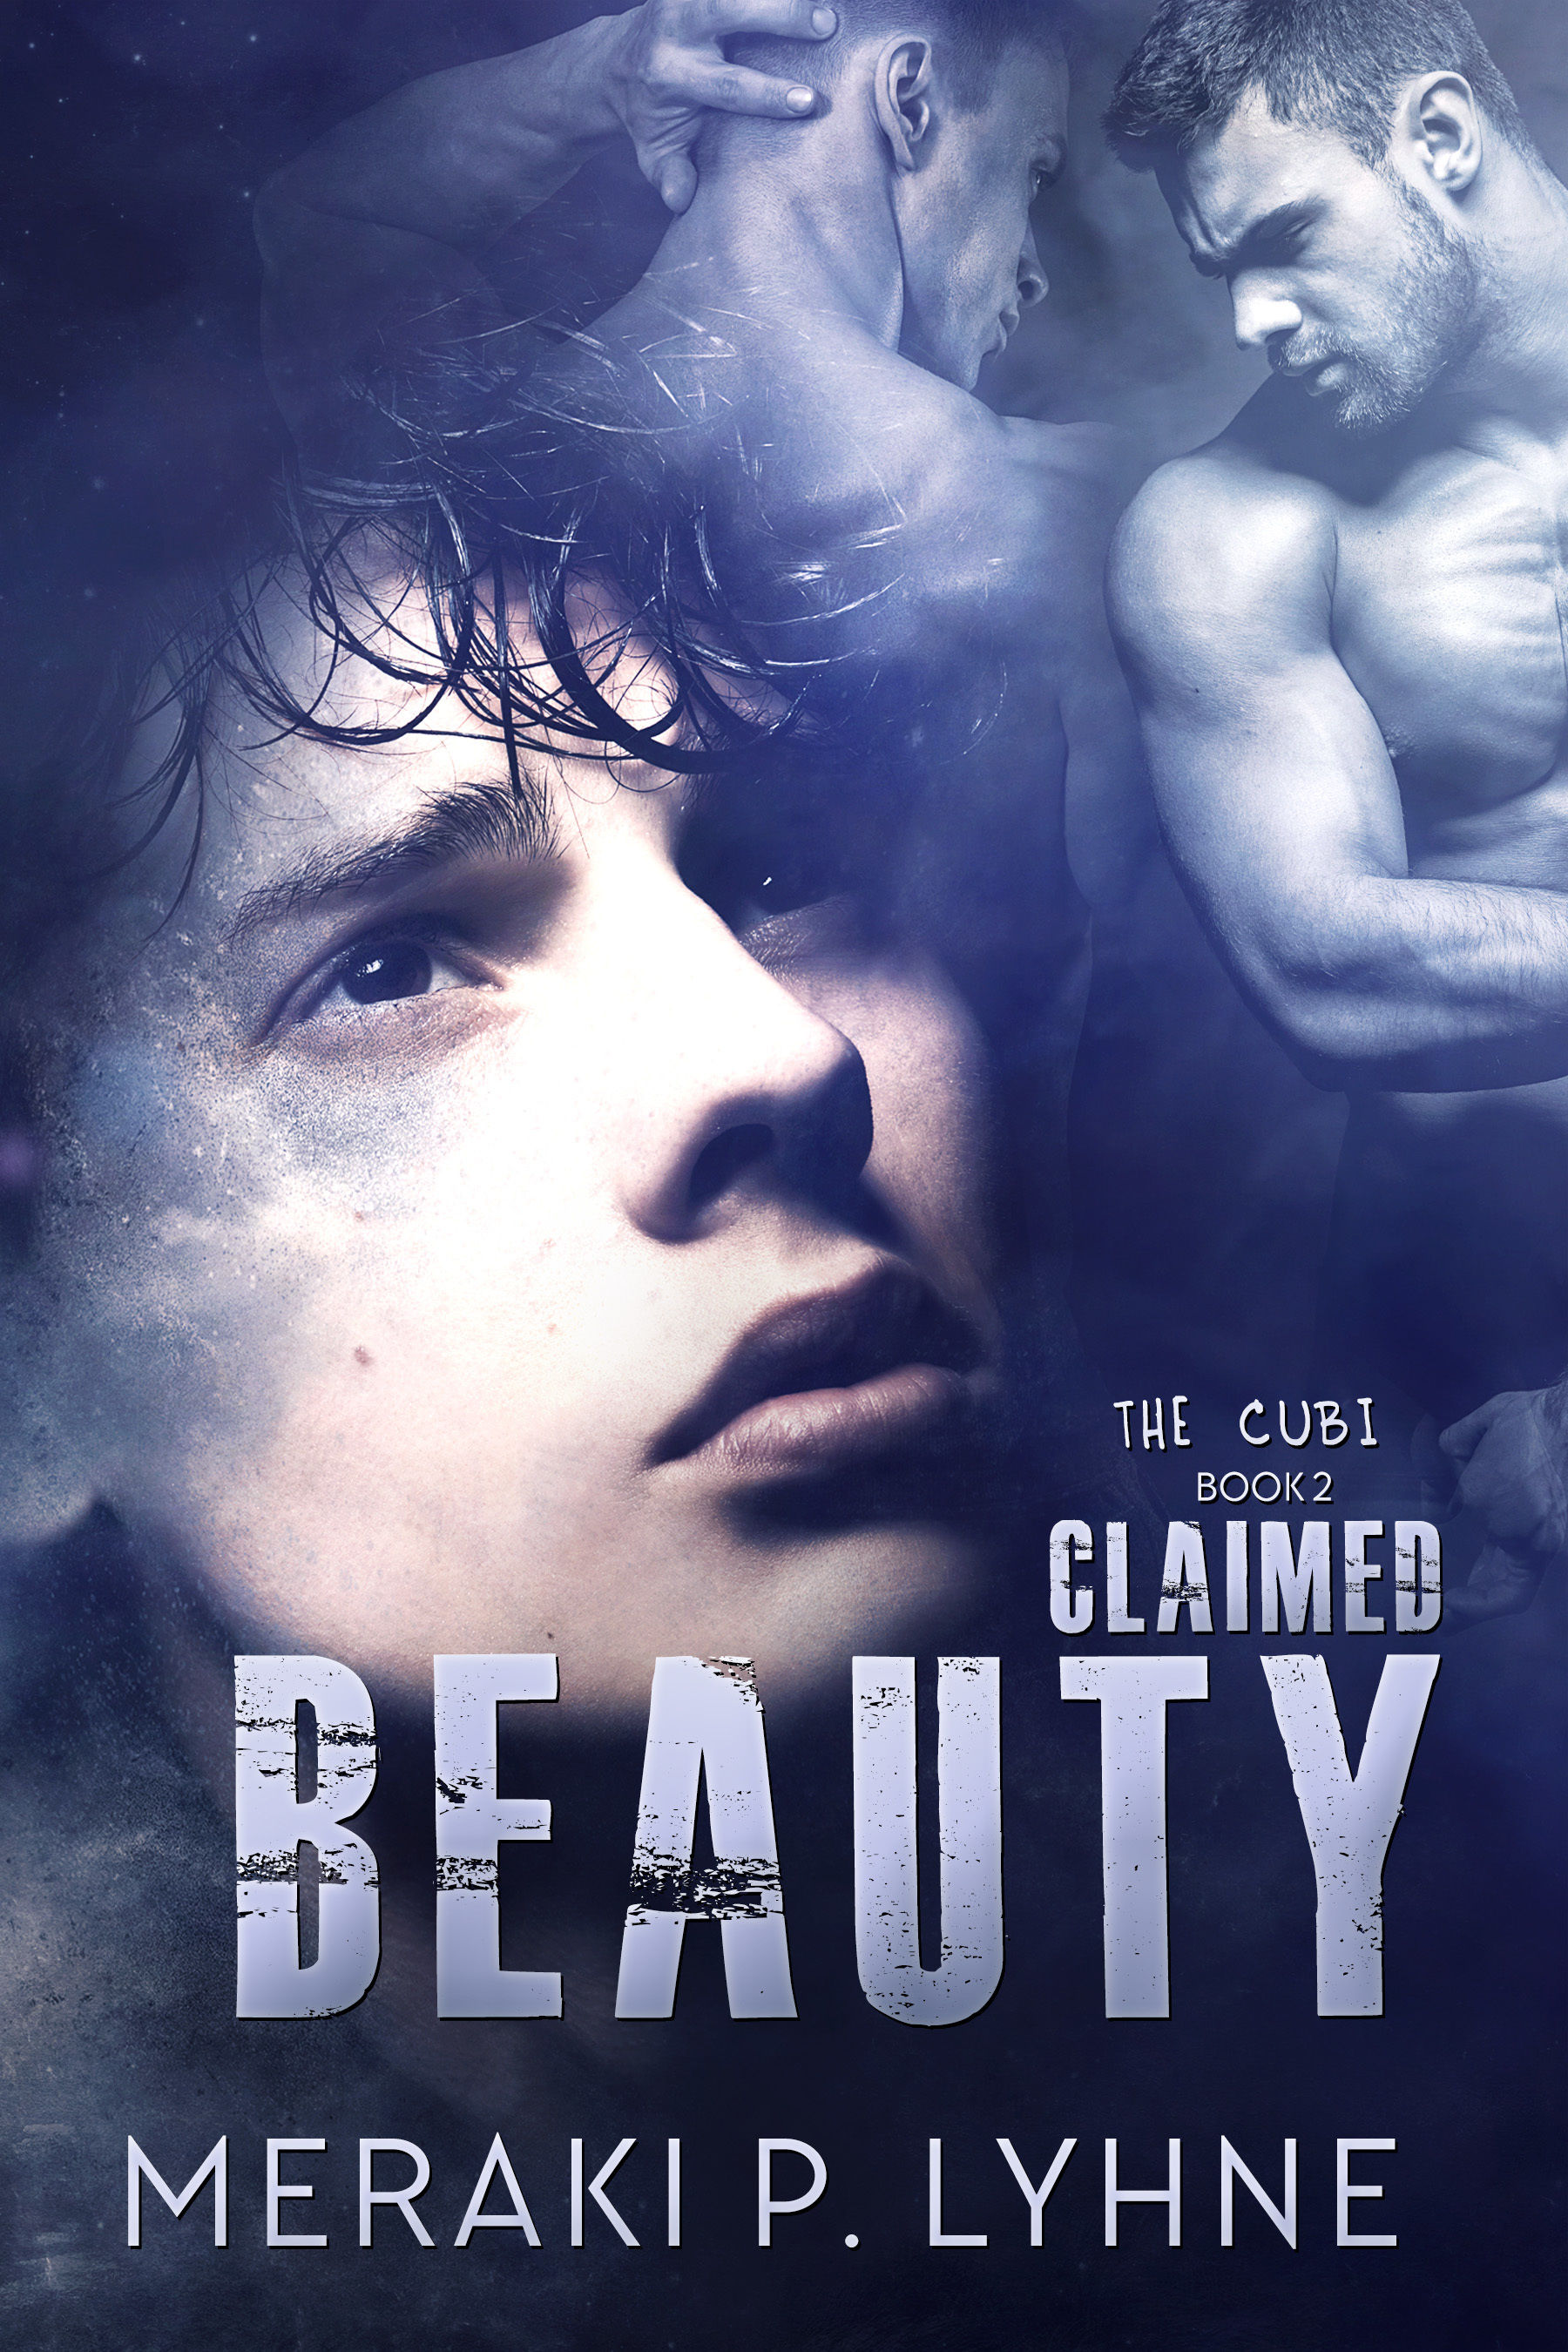 Review: Claimed Beauty by Meraki P. Lyhne